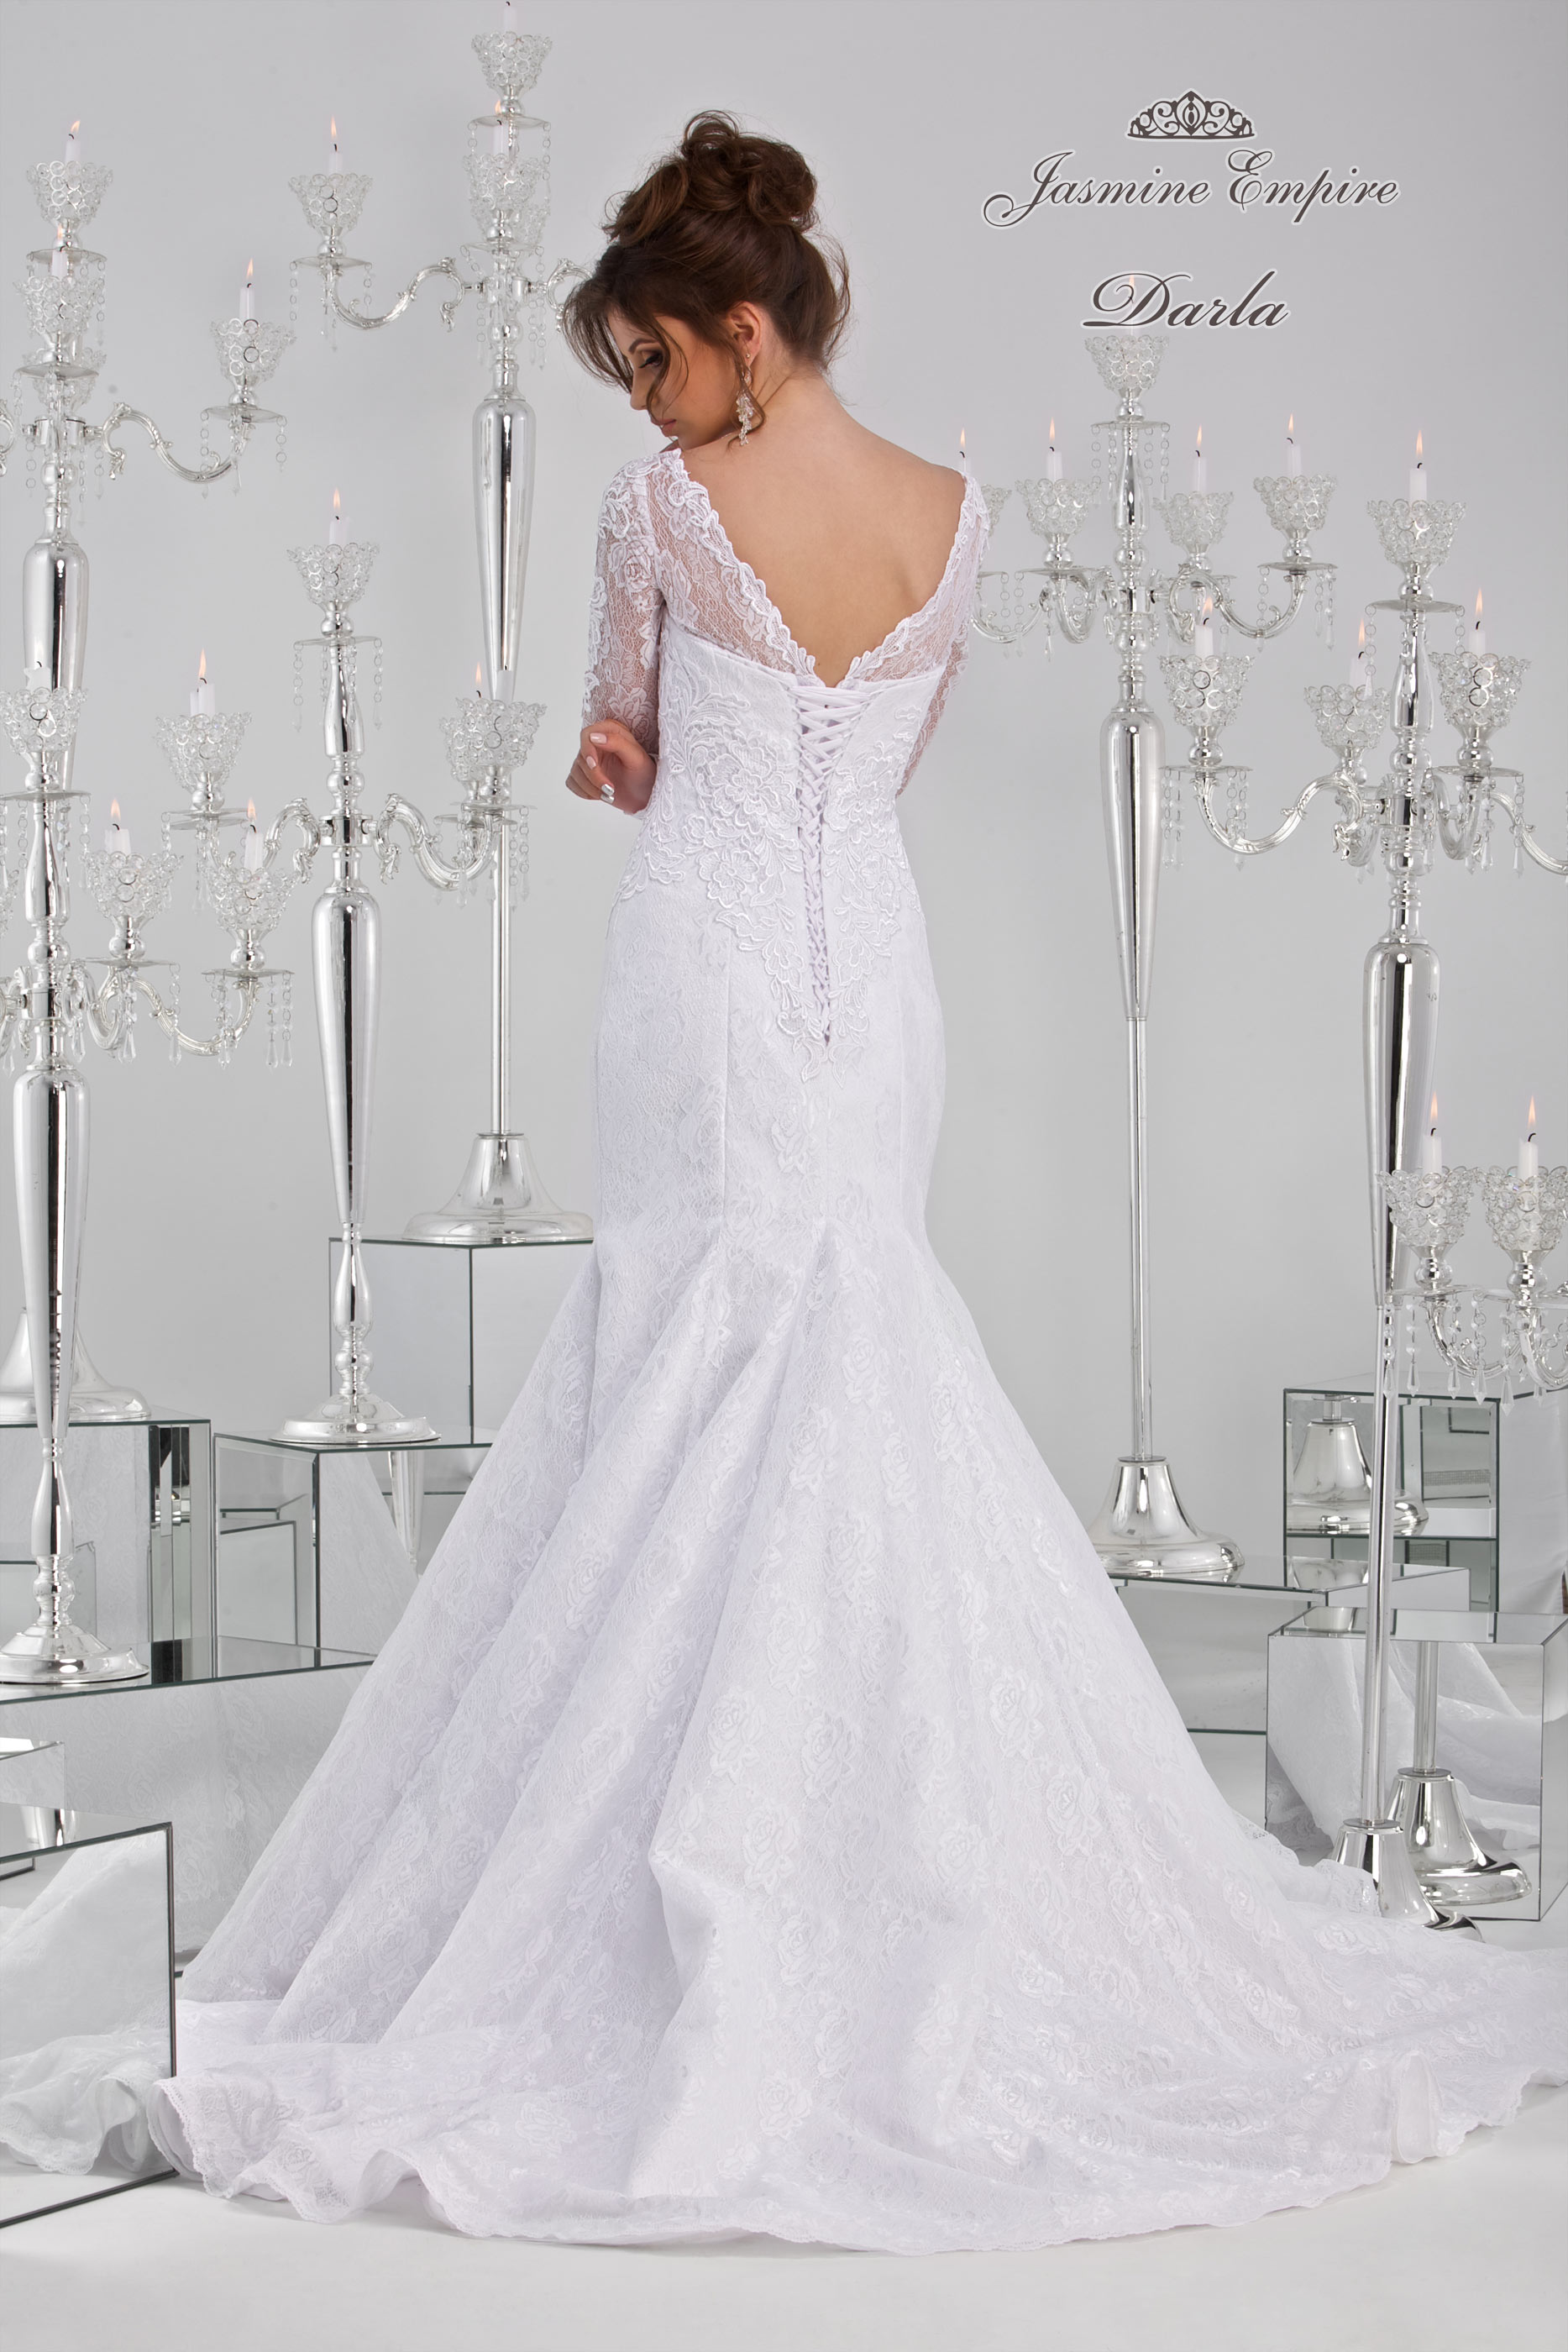 Wedding Dress DARLA  1